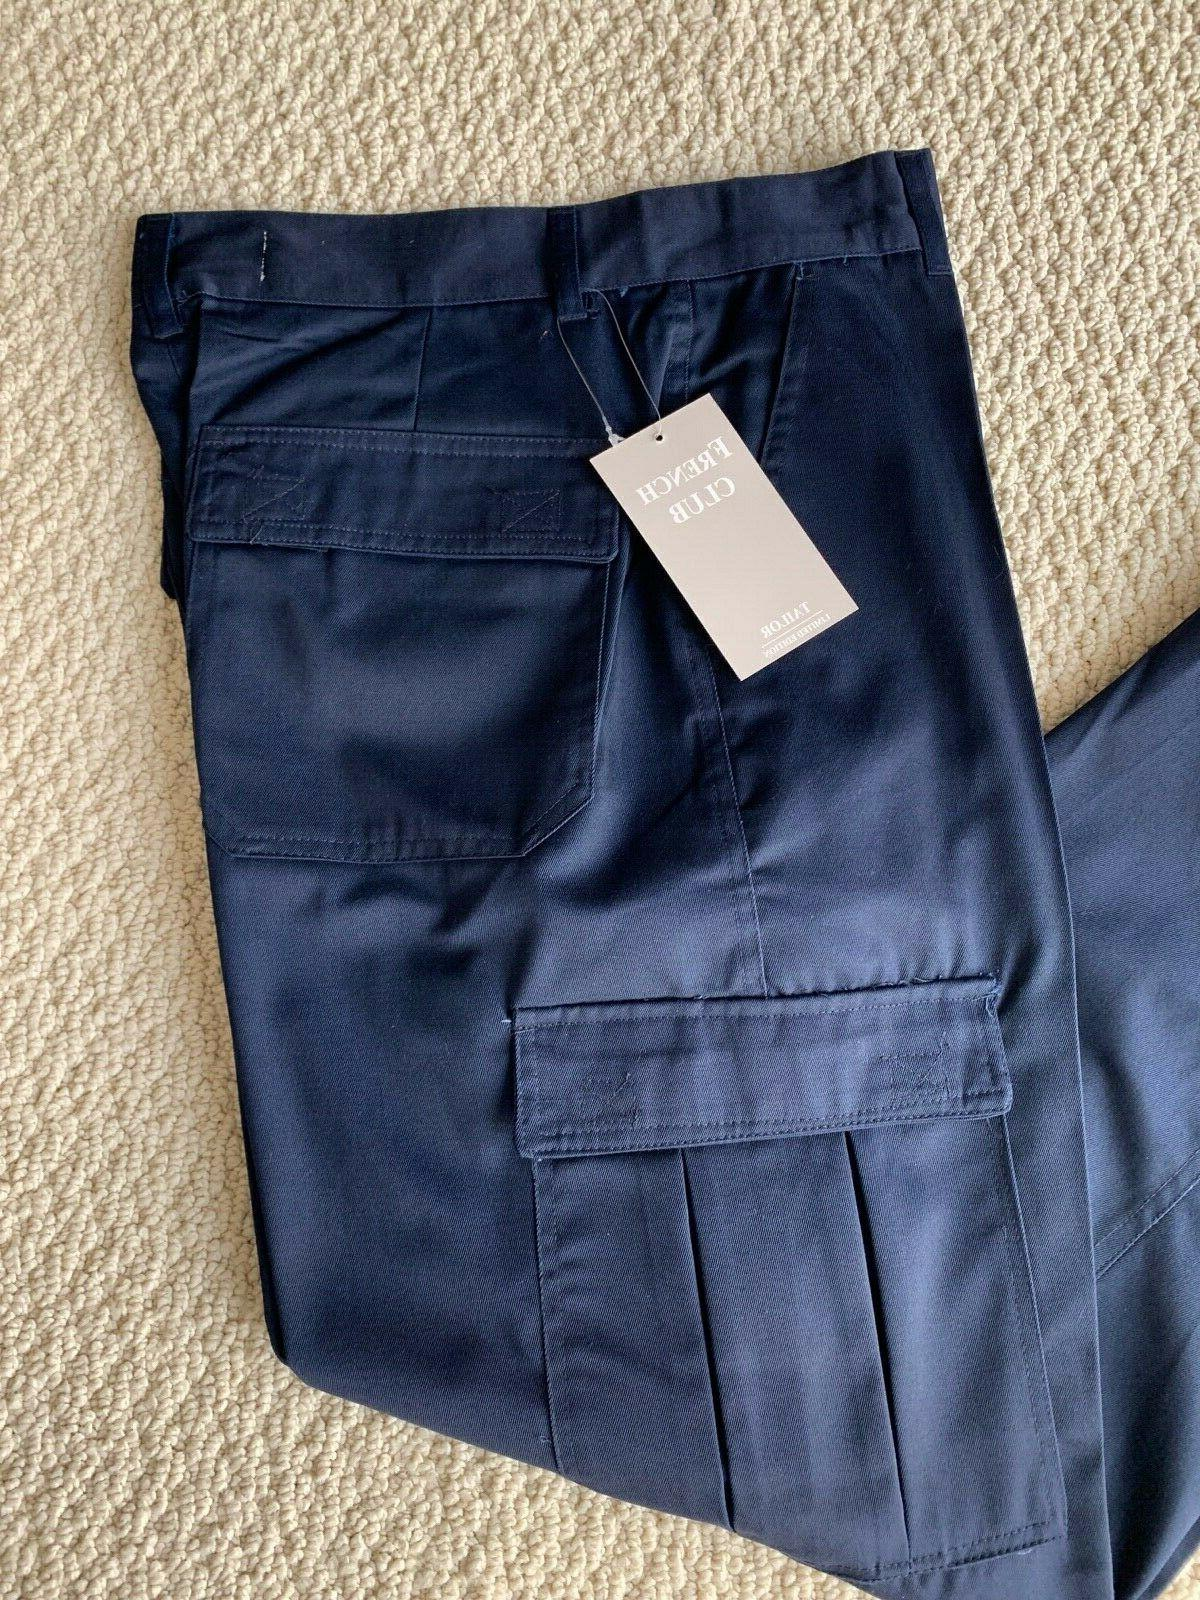 NWT Men's French Classic Navy Flap Cargo Pocket Pants SIZE